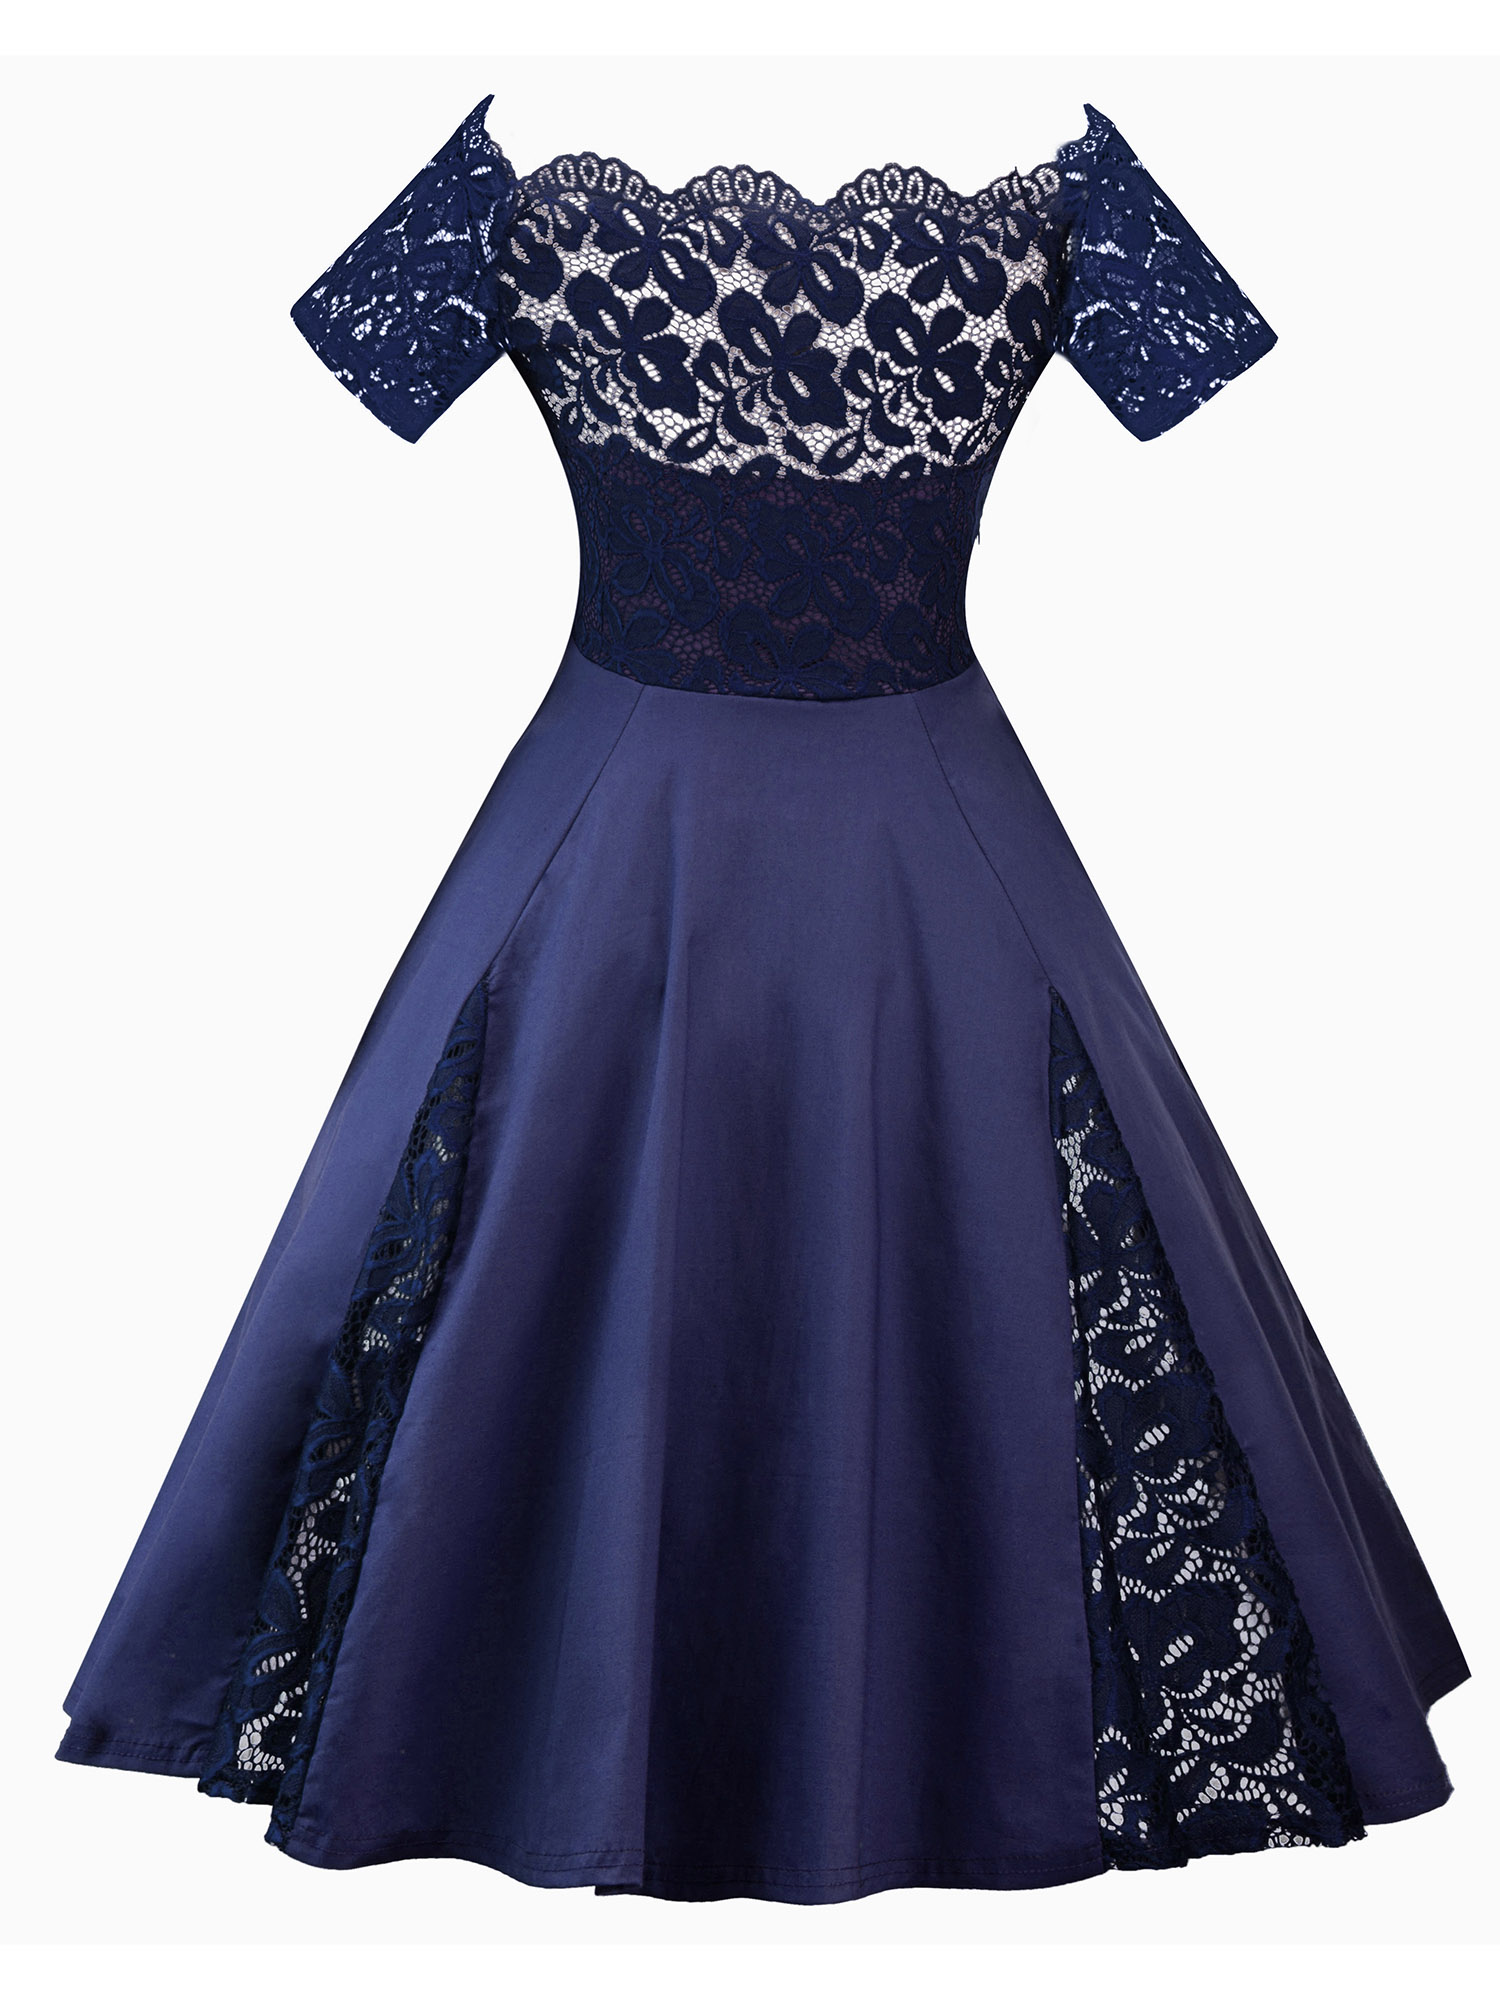 Vintage Rockabilly 50s Swing Dress Evening Formal Party Prom Maxi Dress Cocktail